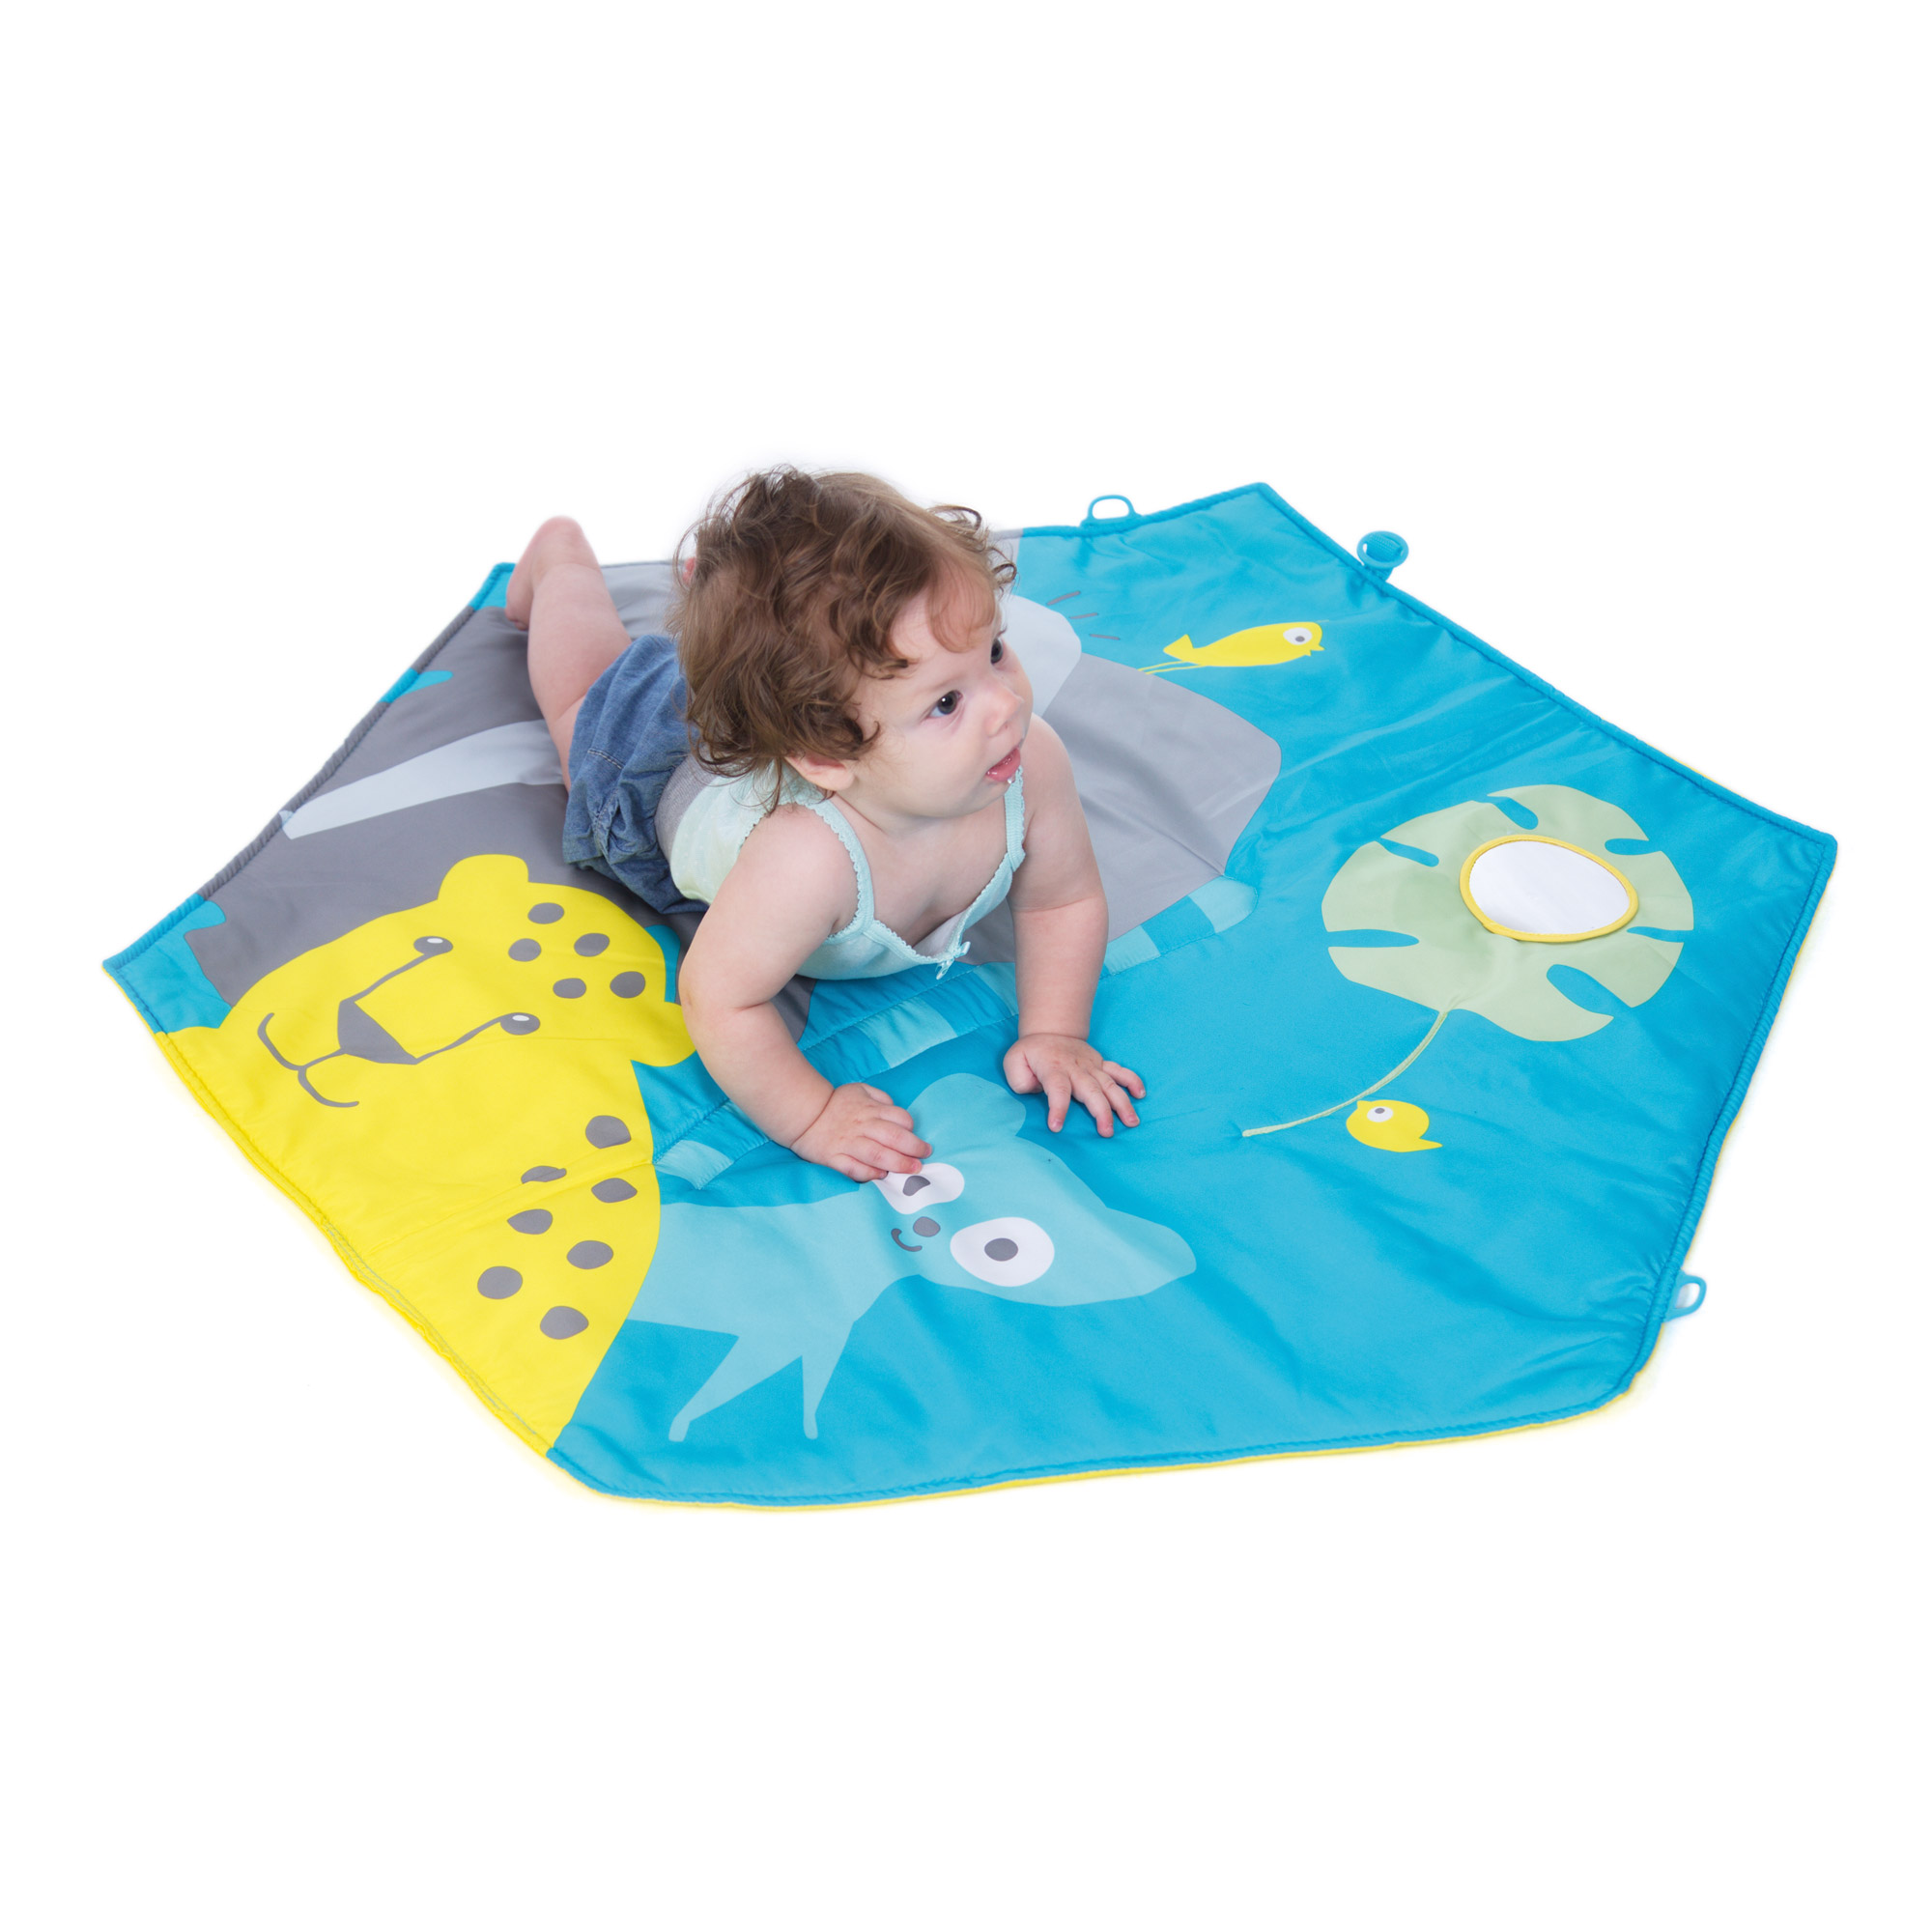 Pili playmat tapis de jeu Jungle  de Babytolove